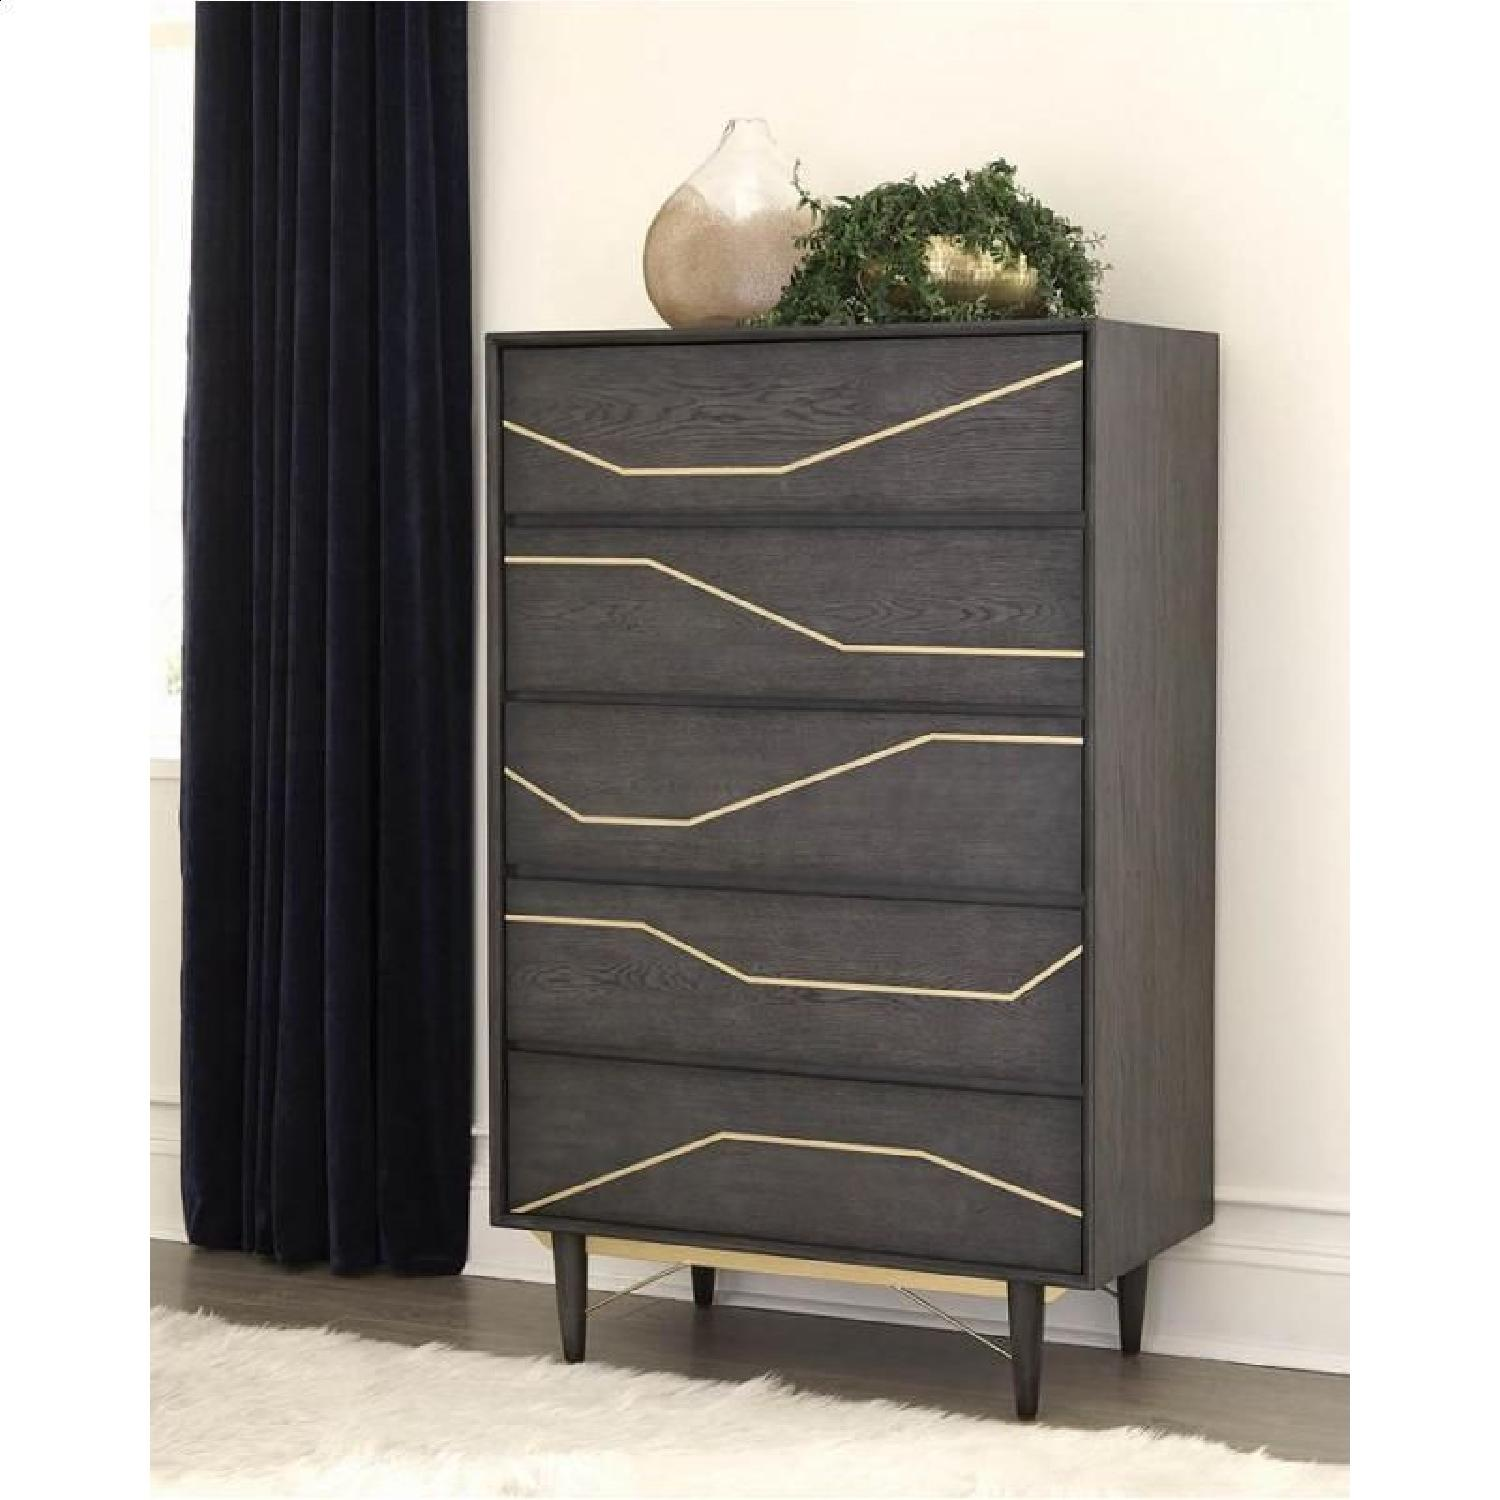 Modern Dresser in Graphite Finish w/ Gold Color Inlay - image-6